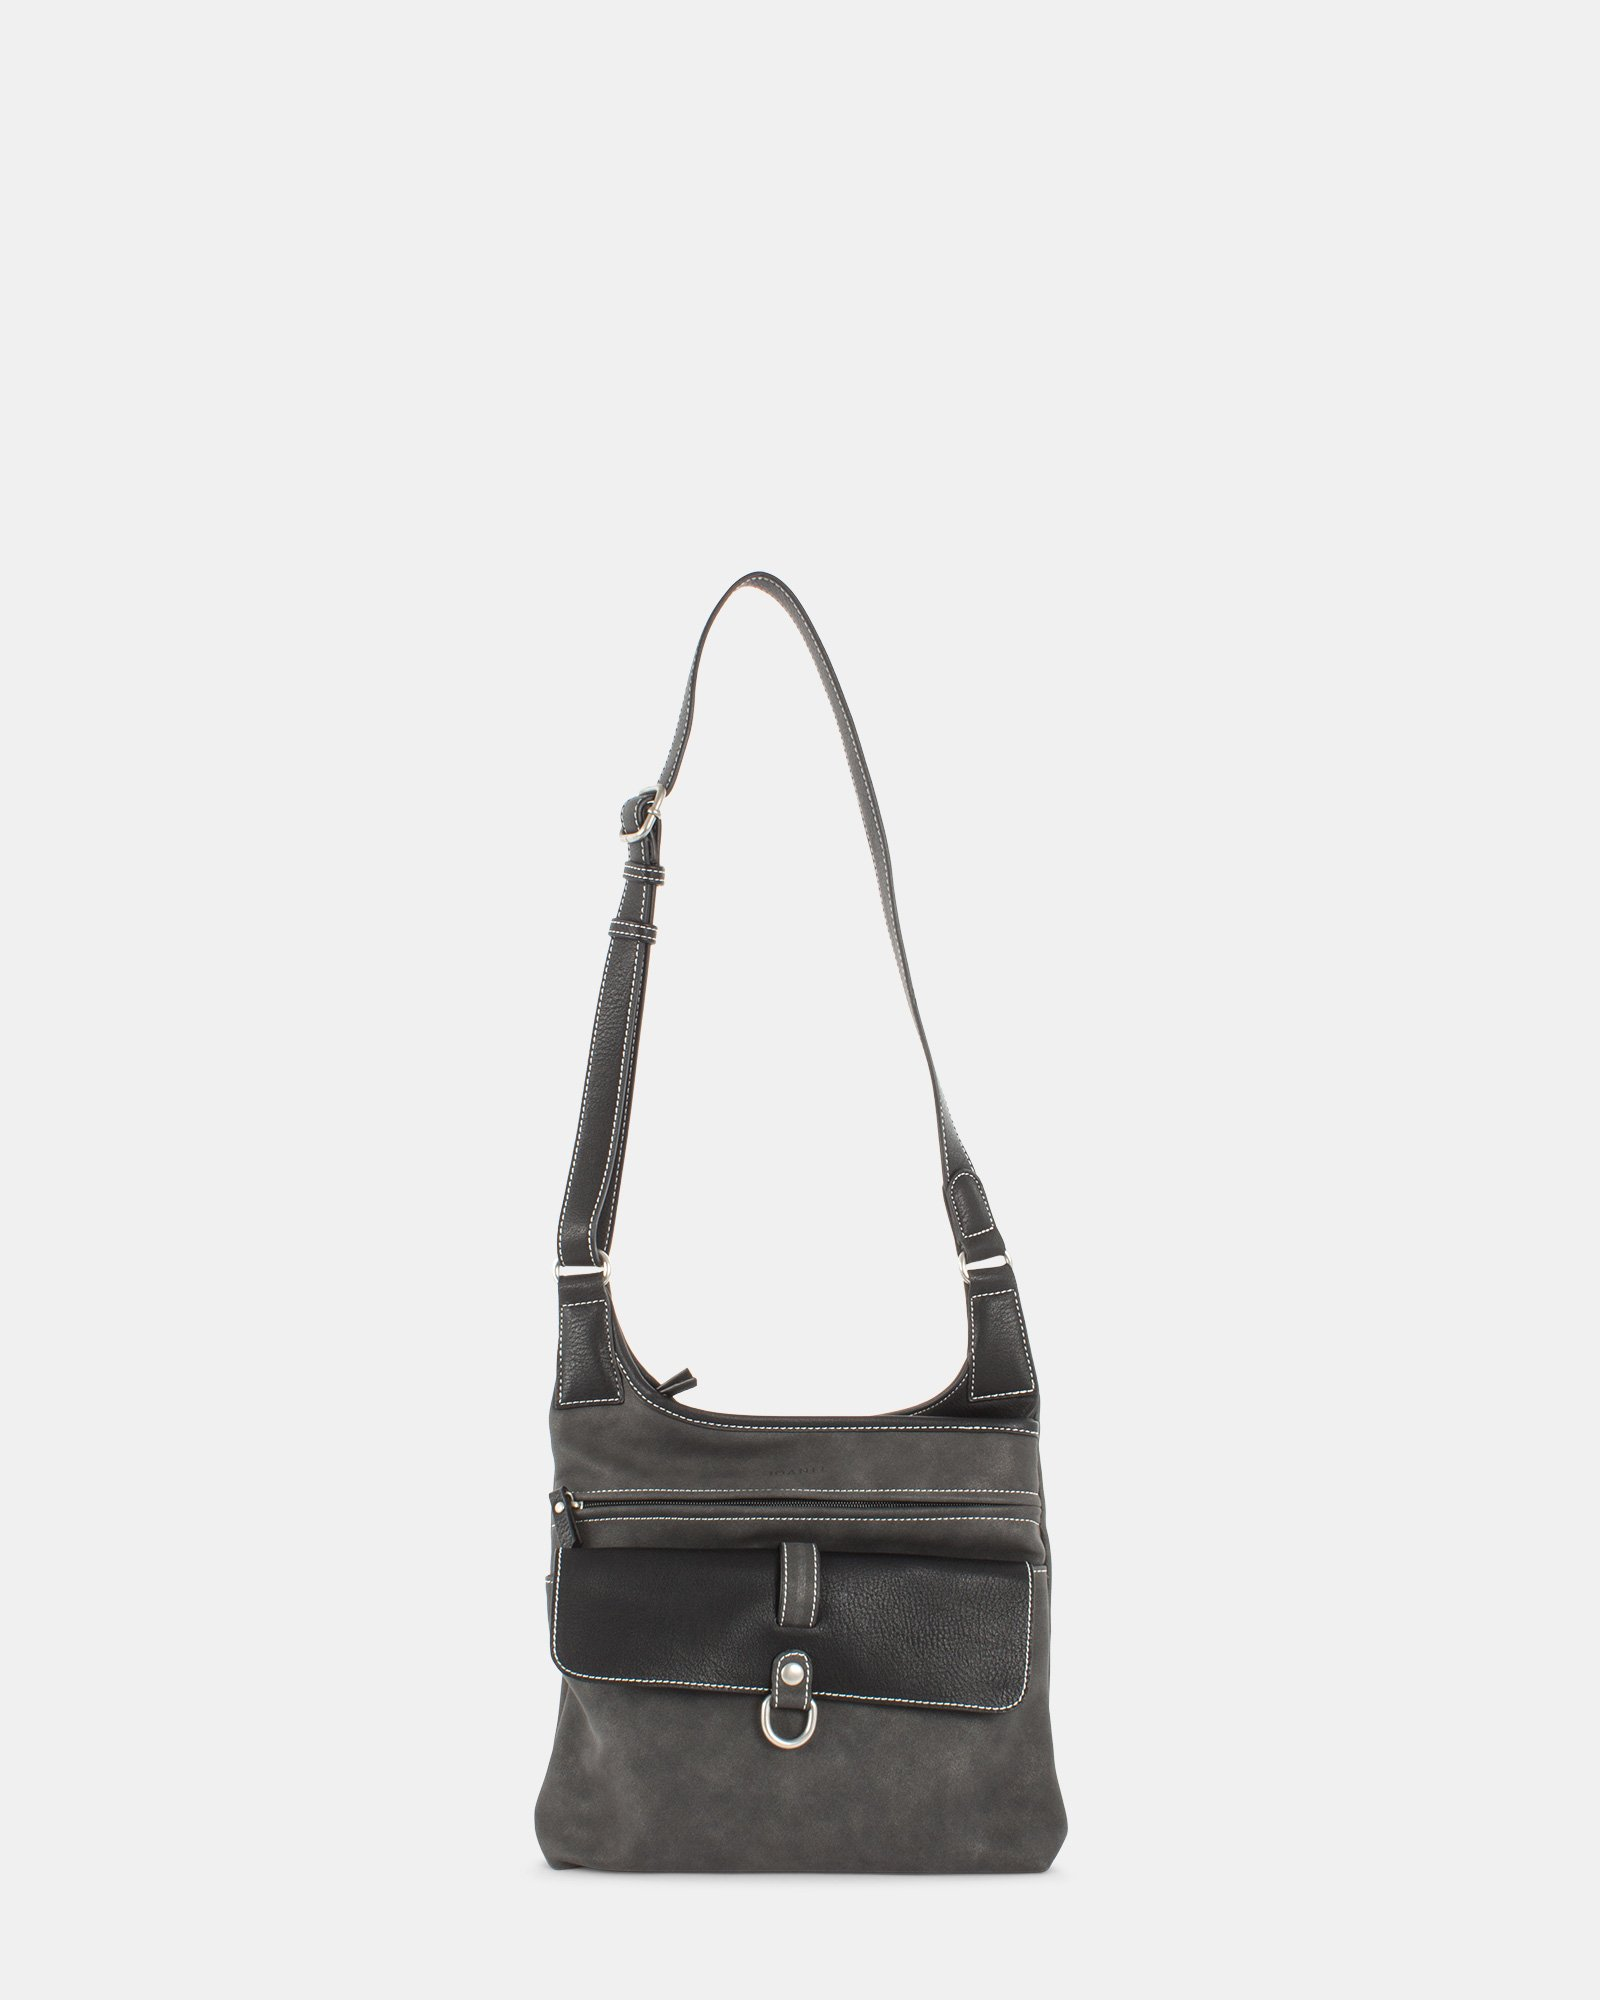 BRIDGET - Hobo Bag - Joanel - Zoom